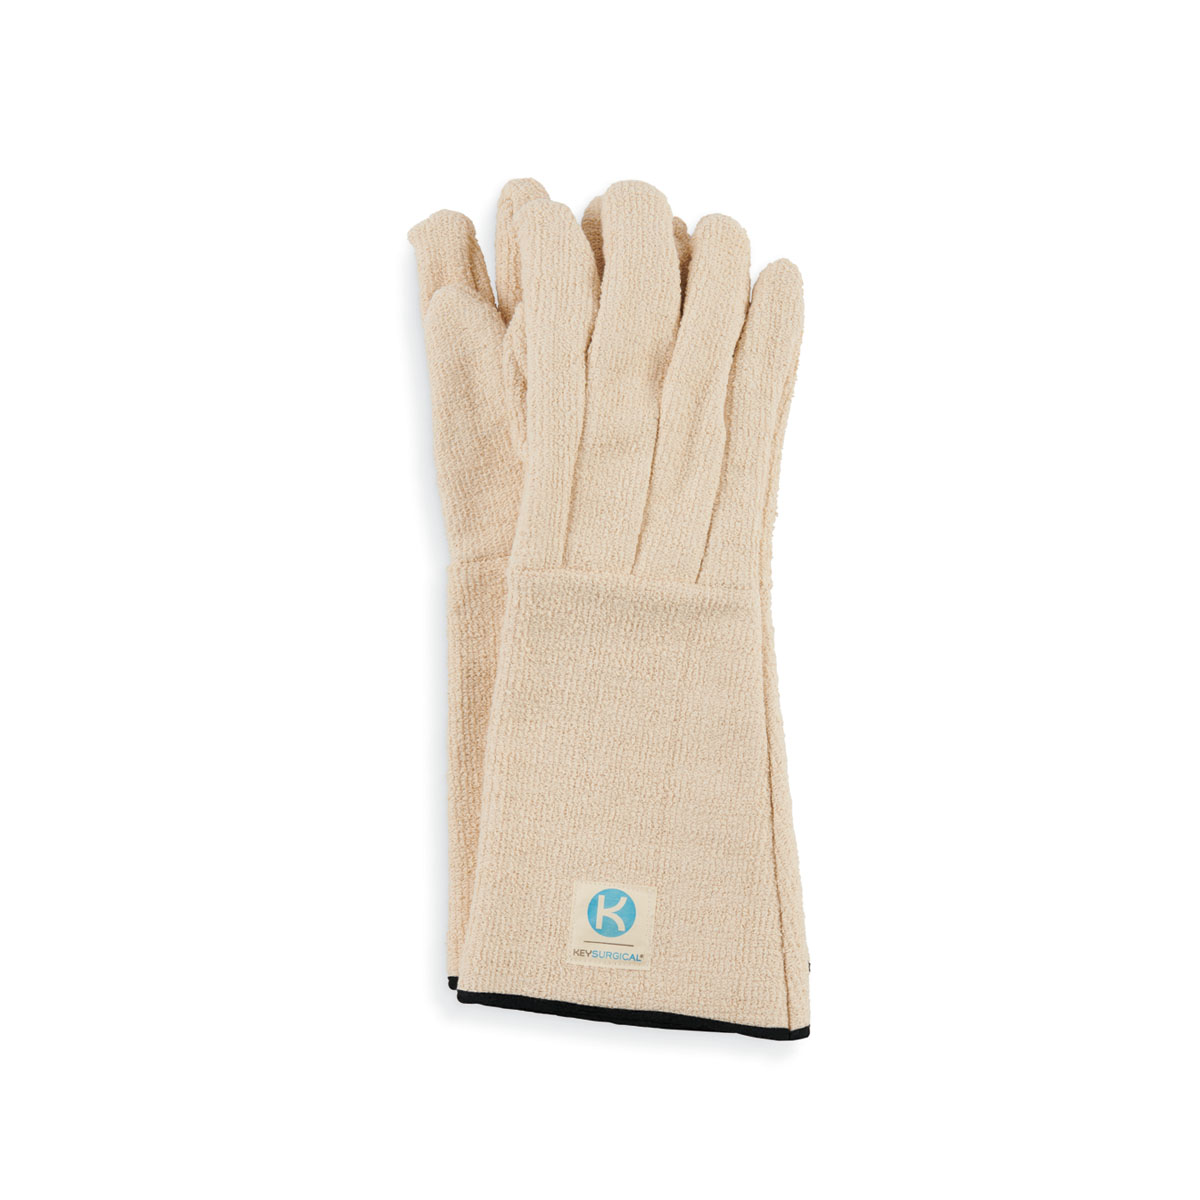 Sterilizer Gloves Image